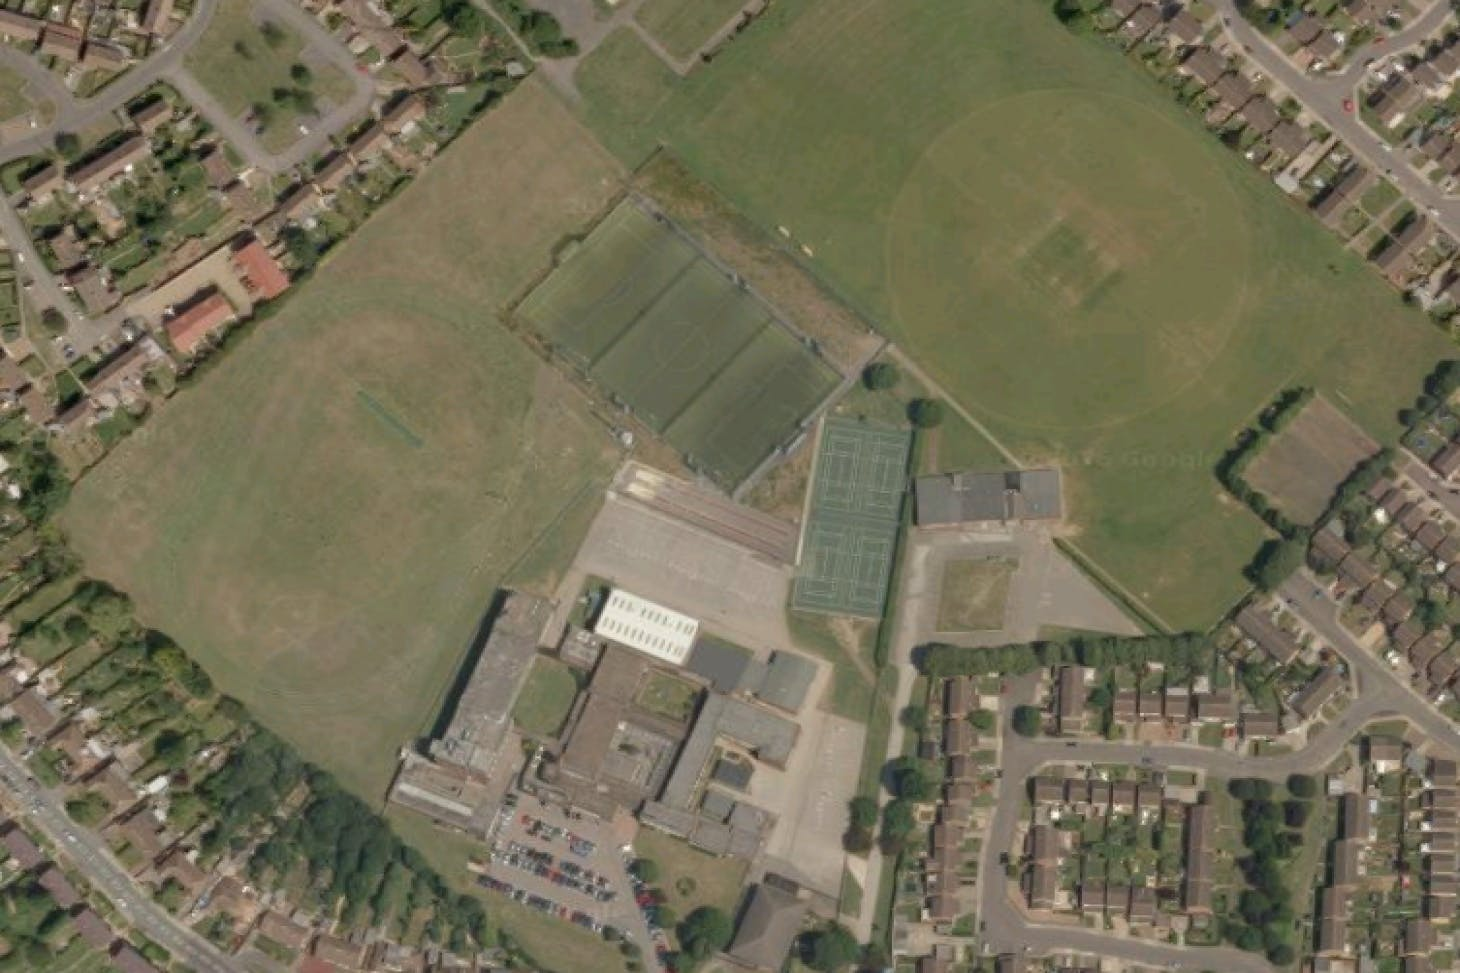 Ashcroft High School Union | Grass rugby pitch